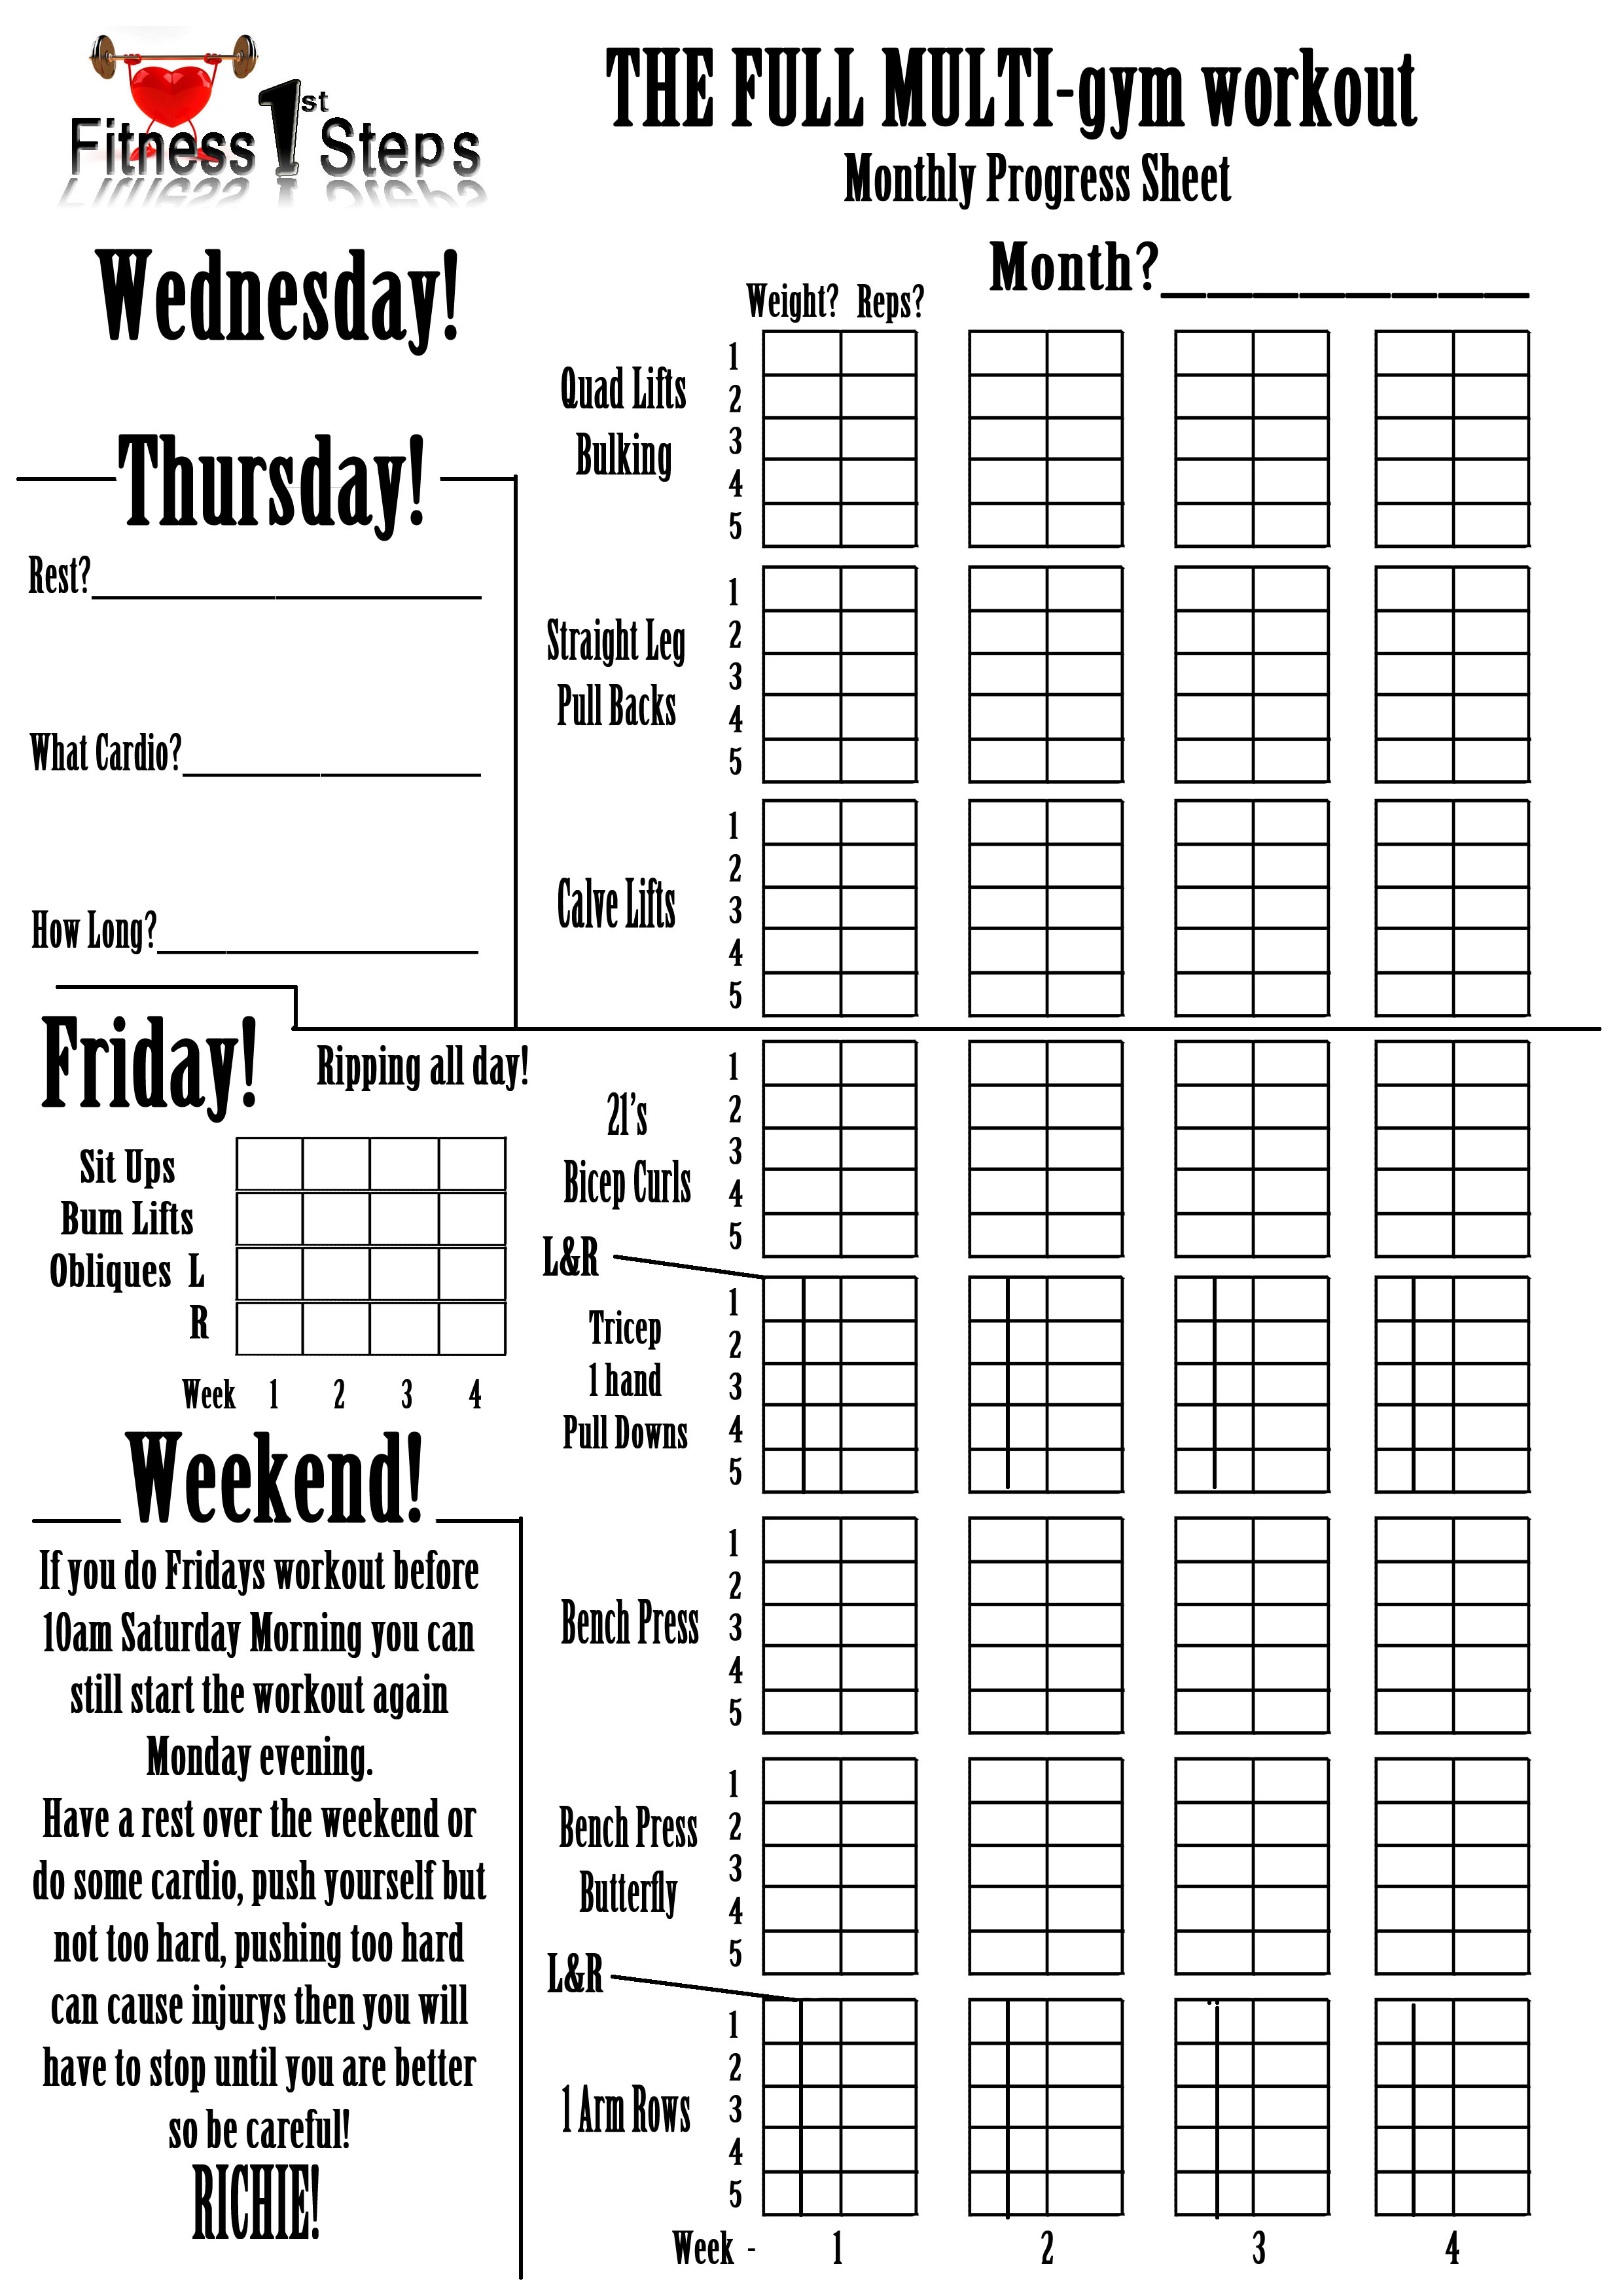 workout sheet P90x workout sheets - free ebook download as excel spreadsheet (xls), pdf file (pdf), text file (txt) or read book online for free.